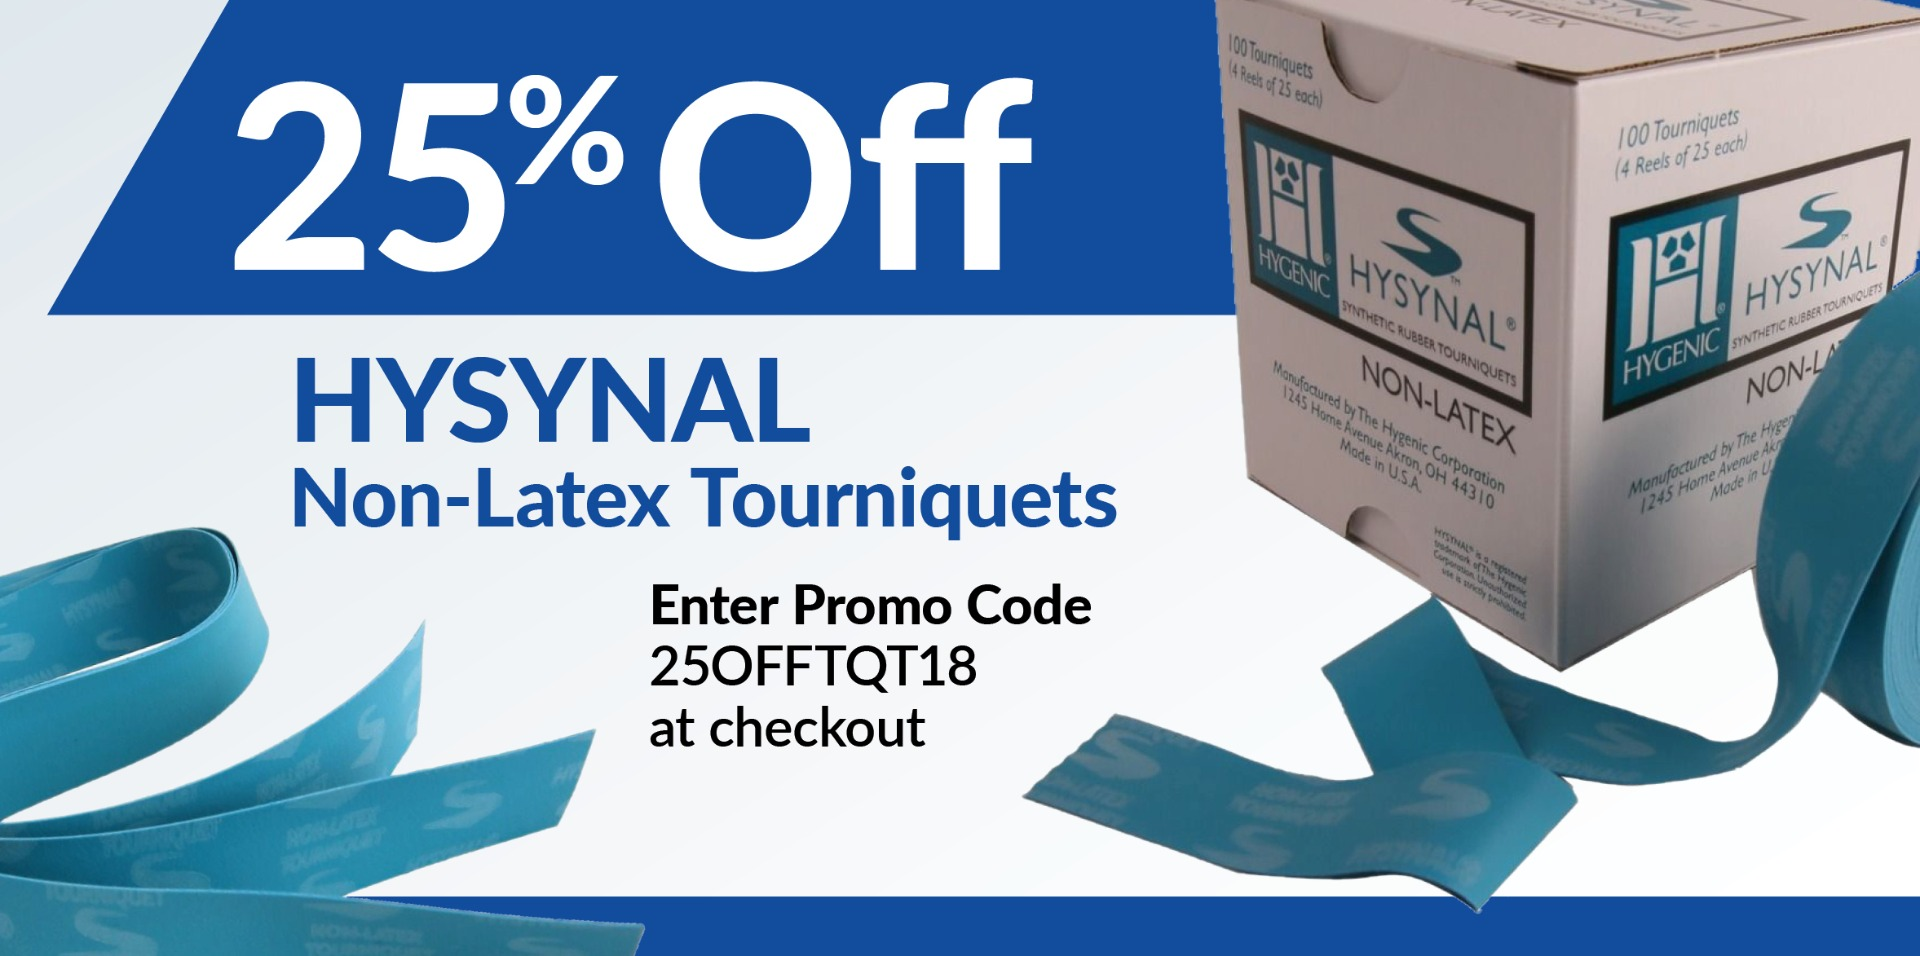 Hysynal non-latex tourniquet promo 25 off